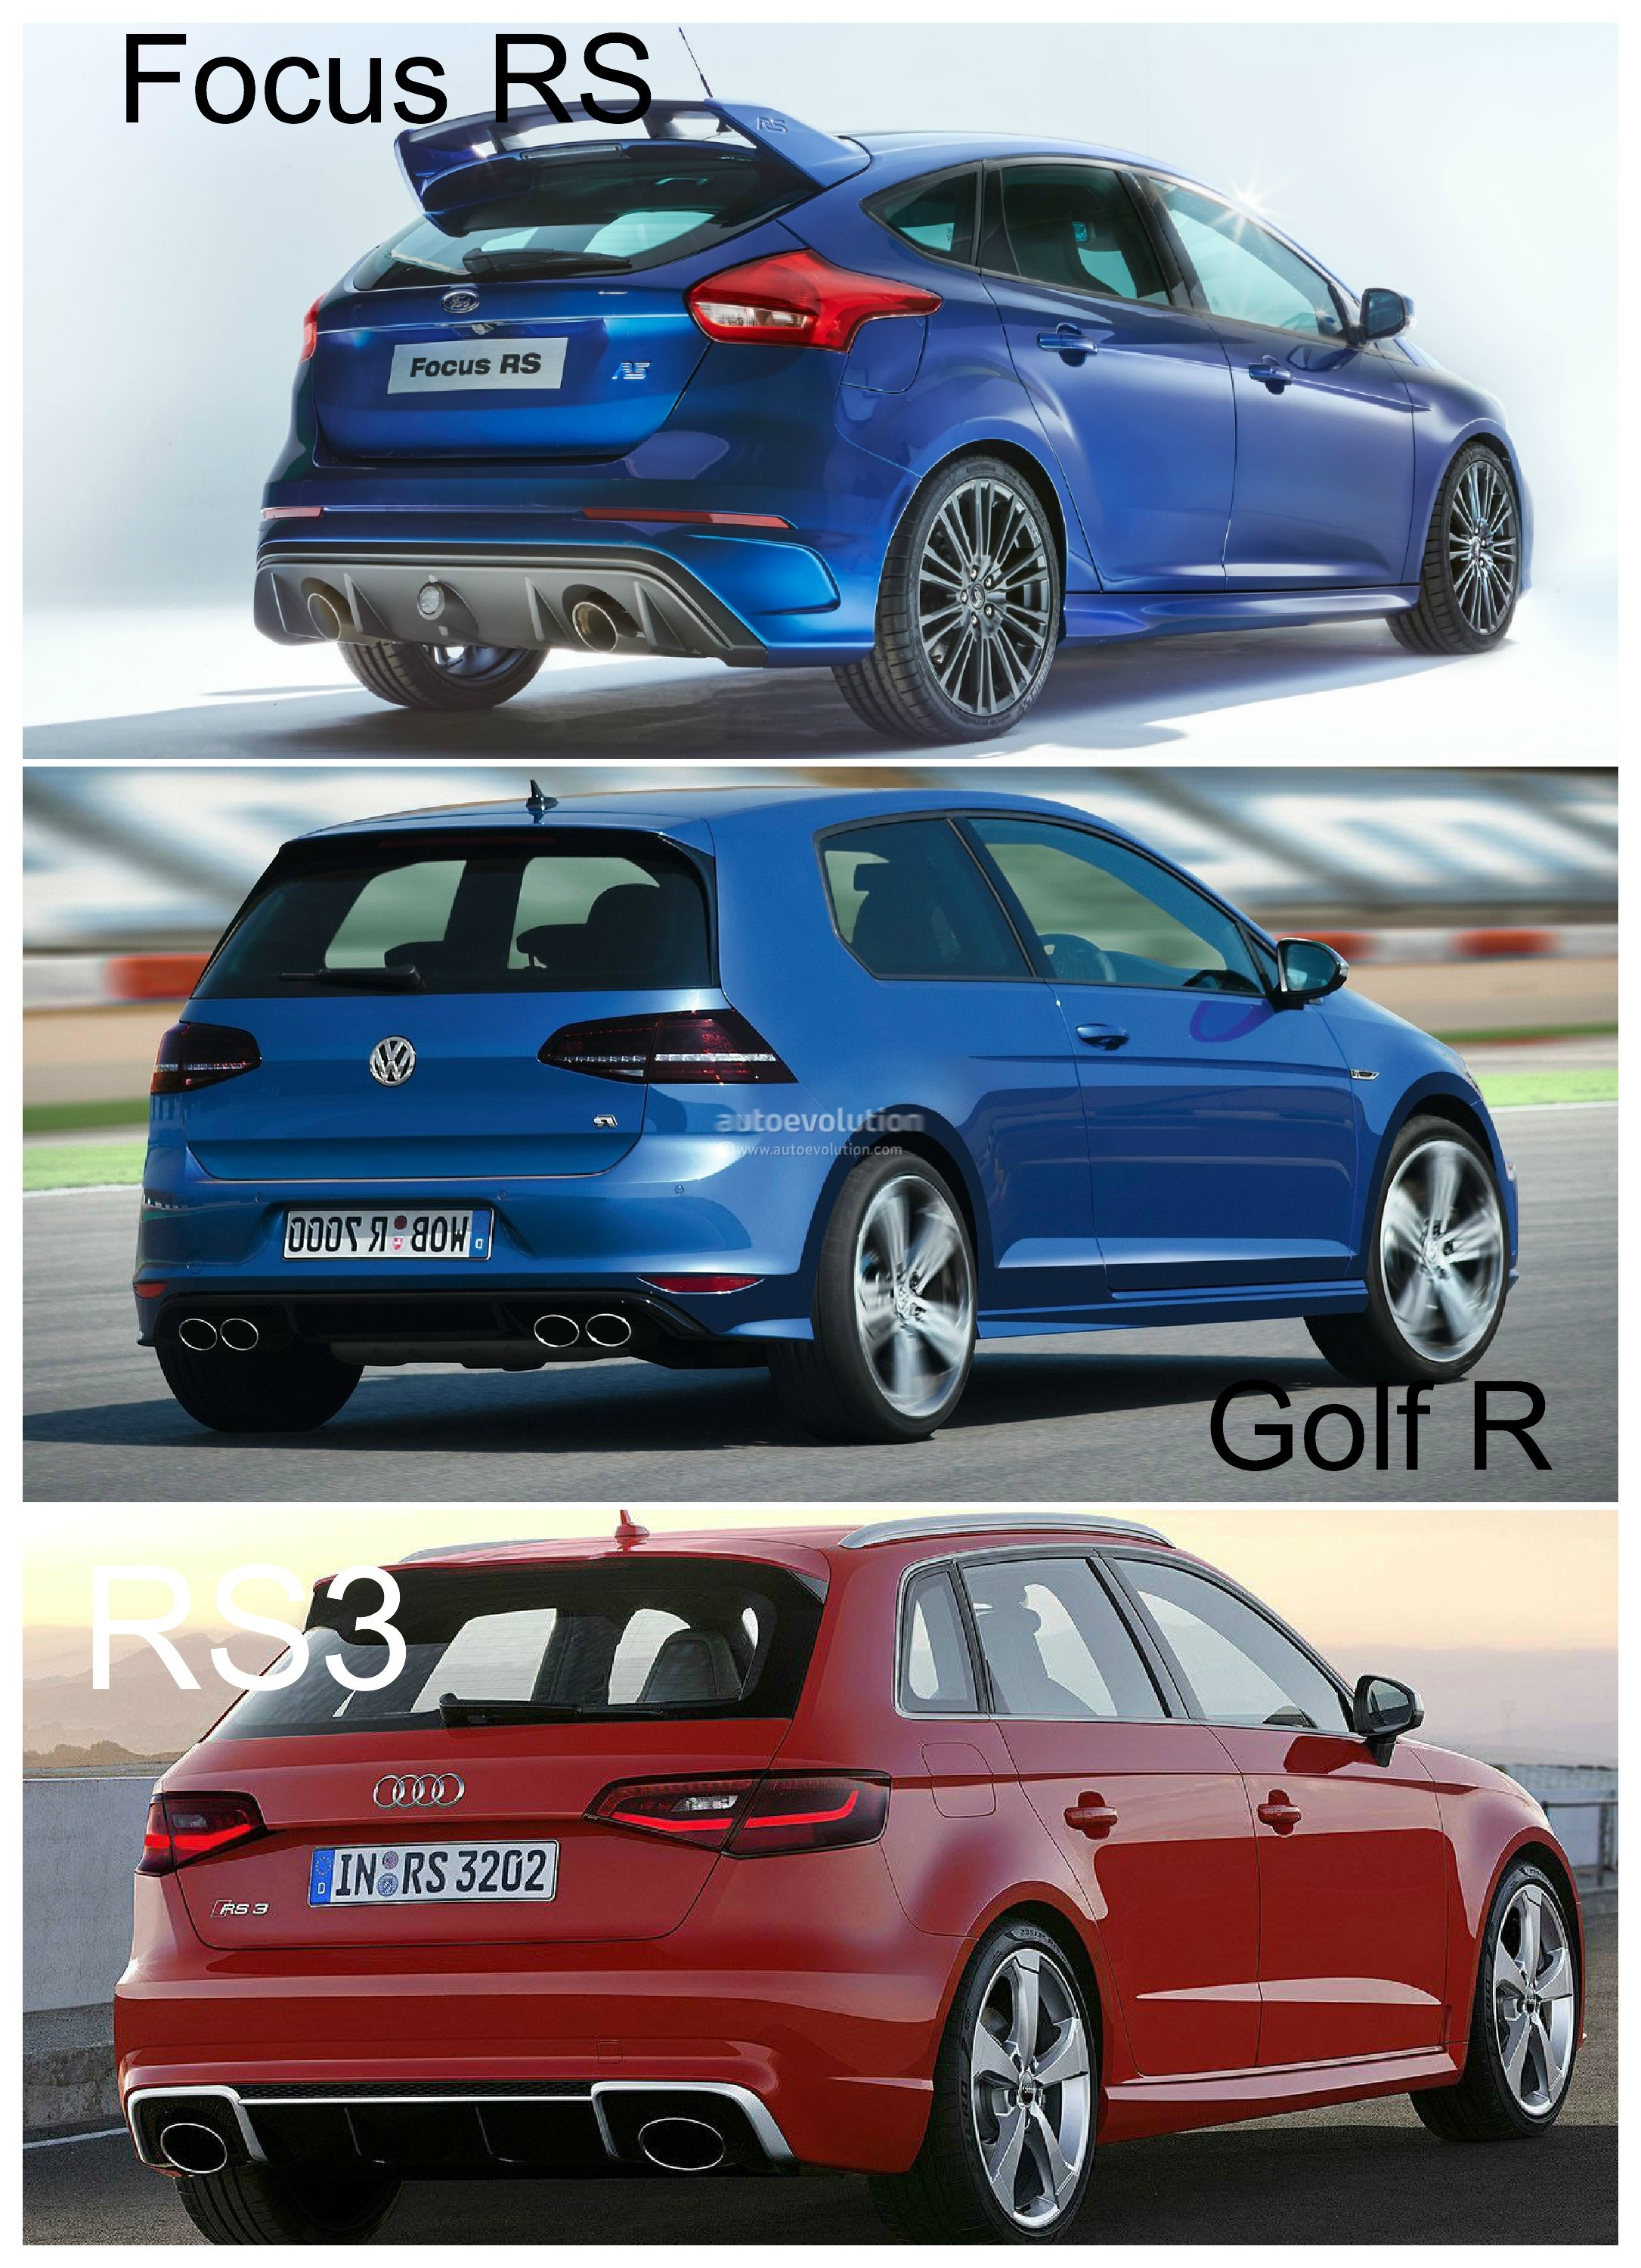 2016 ford focus rs vs golf r and audi rs3 hyper hatch photo comparison autoevolution